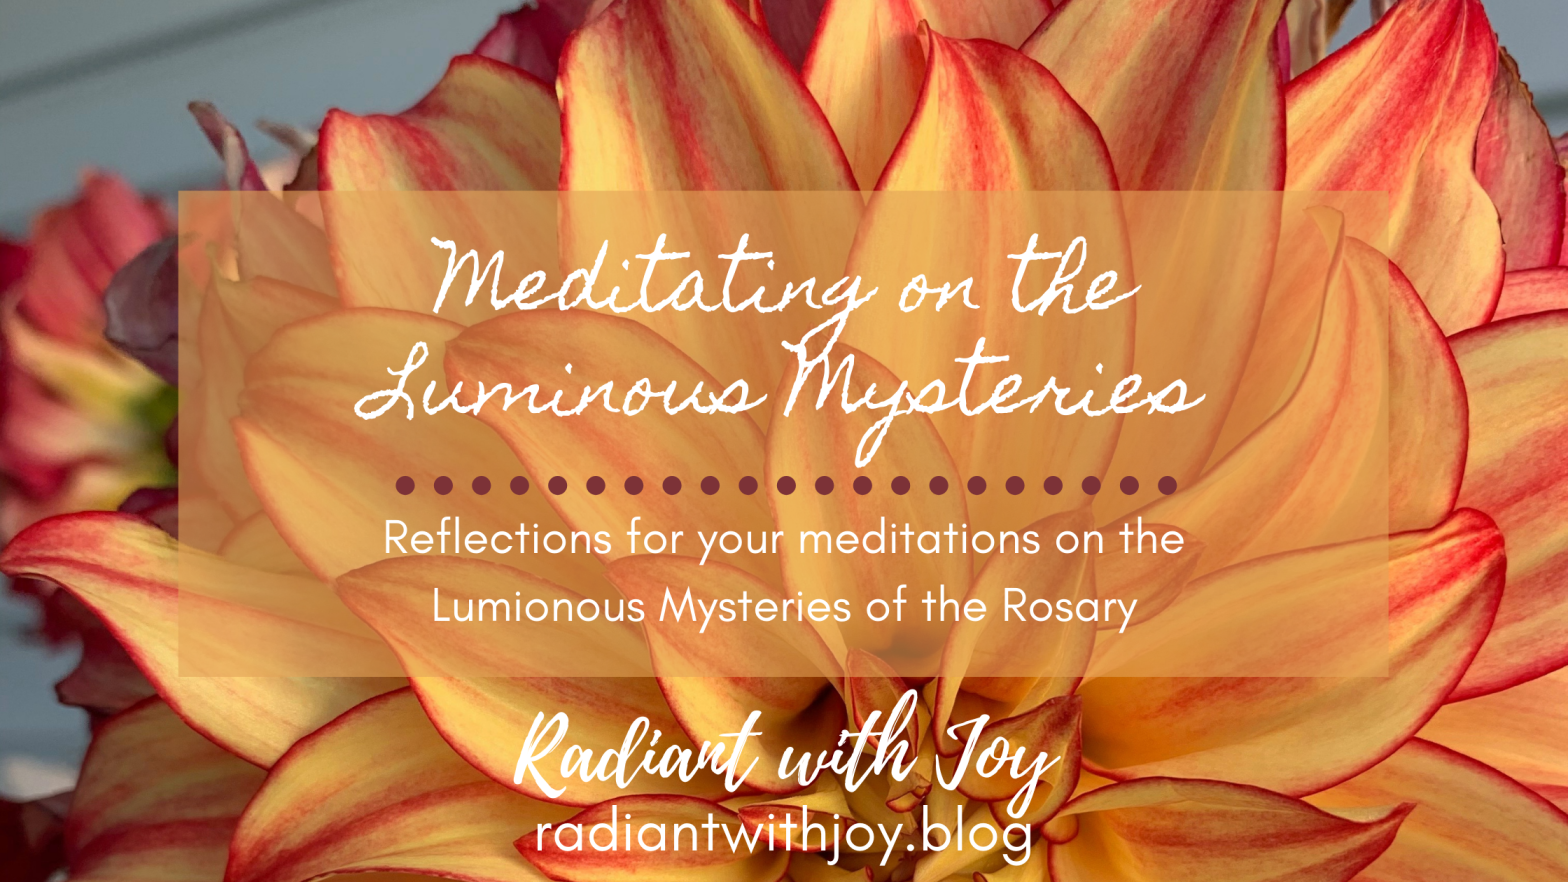 Meditating on the Luminous Mysteries